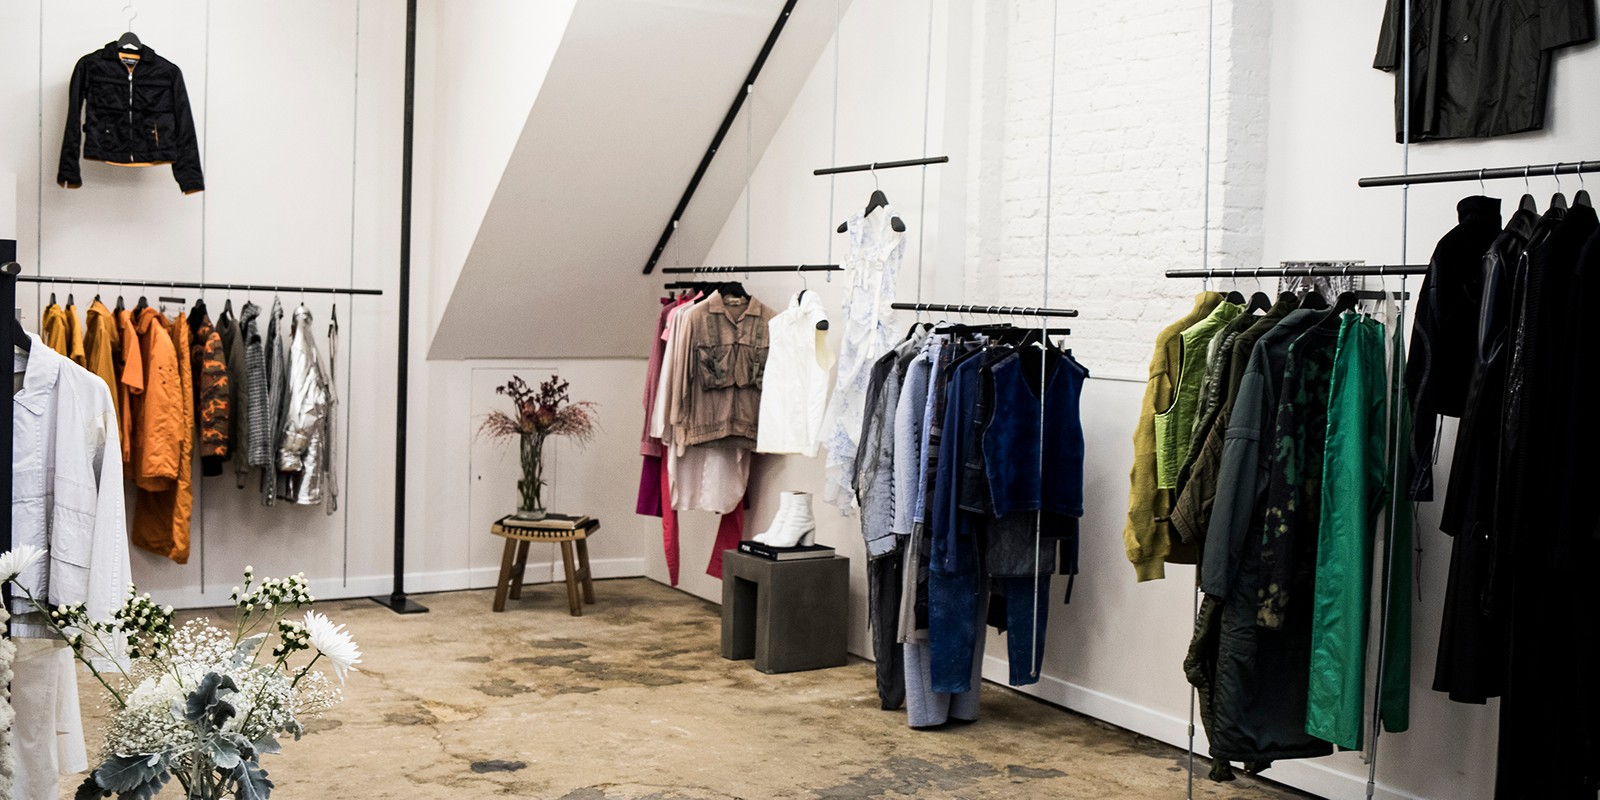 Aro Archive Is Paving the Way for Pre-Owned Luxury Community Education Preservation University Insiders Guide Vintage Clothing UK London Stores Rare Unique Raf Simons Issey Miyake Supreme Stone Island Y2K 1990s Inside Look London Fashion Week Positive Fashion Exhibition Yohji Yamamoto LFW Pre-Owned Runway Antwerp Samples One Off Pieces